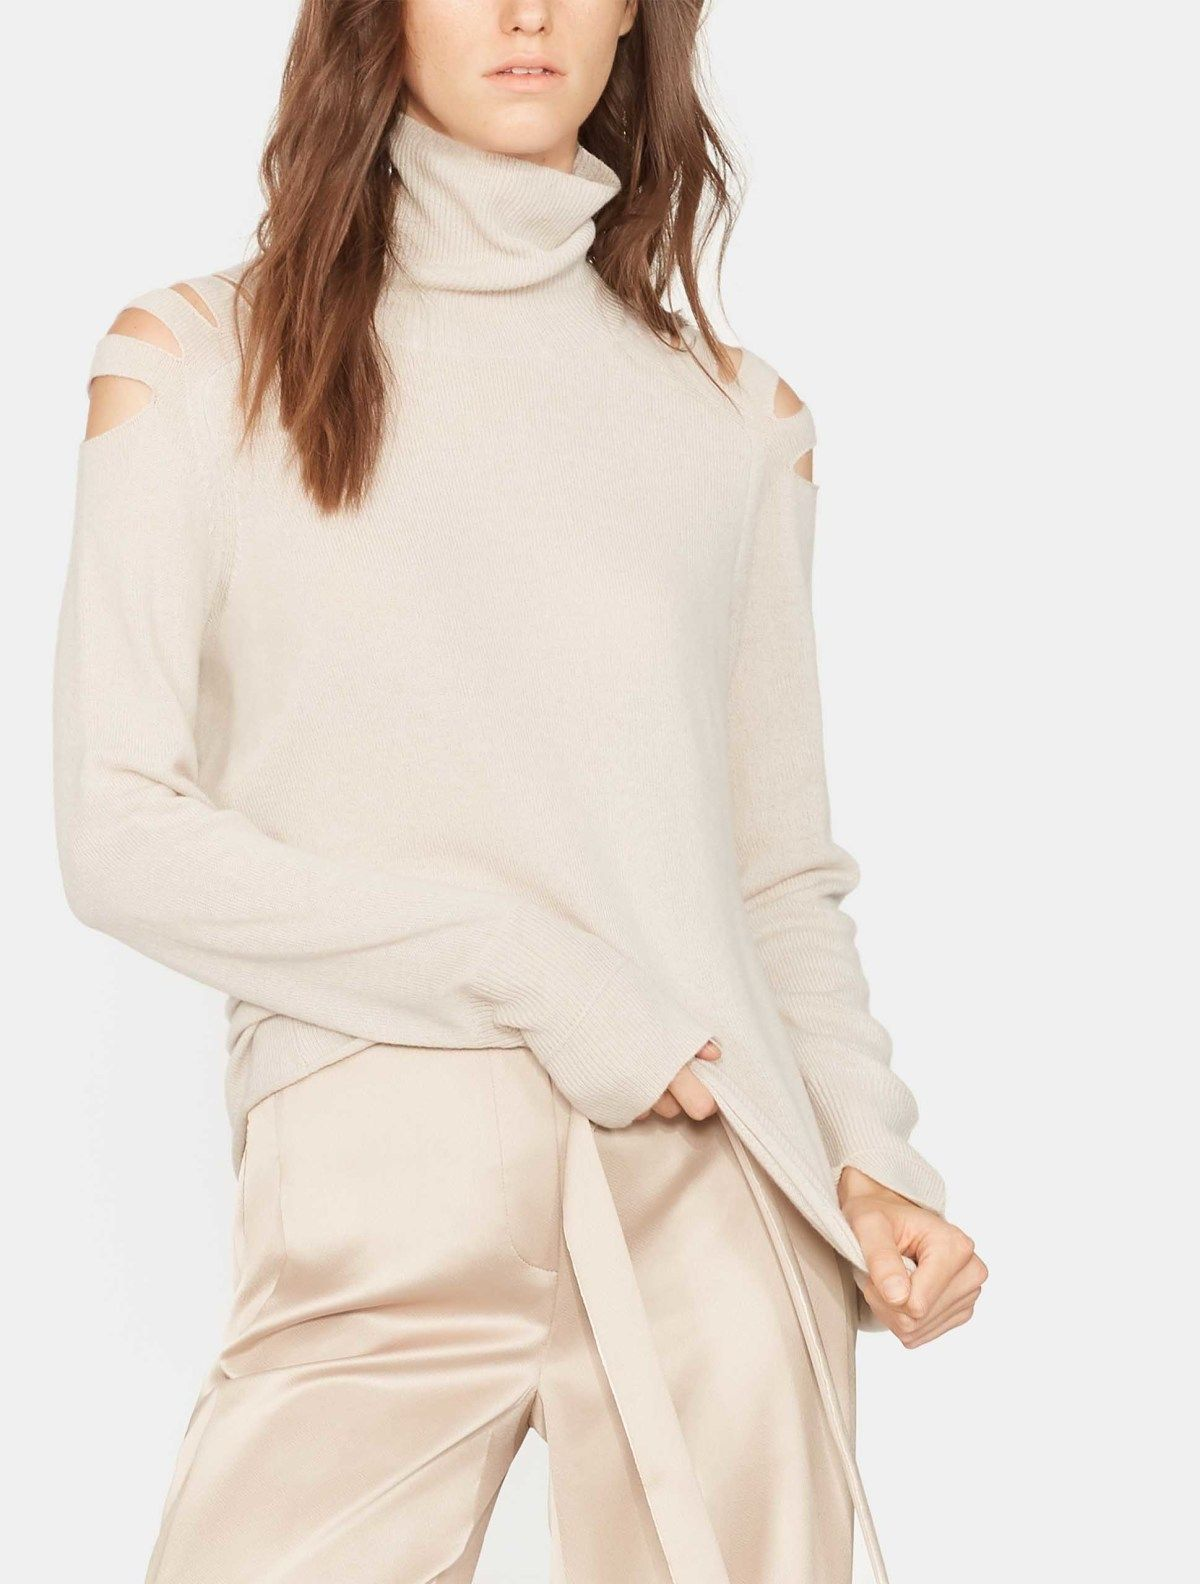 c8adba55a8f Turtleneck Sweater with Cut Outs in Beige